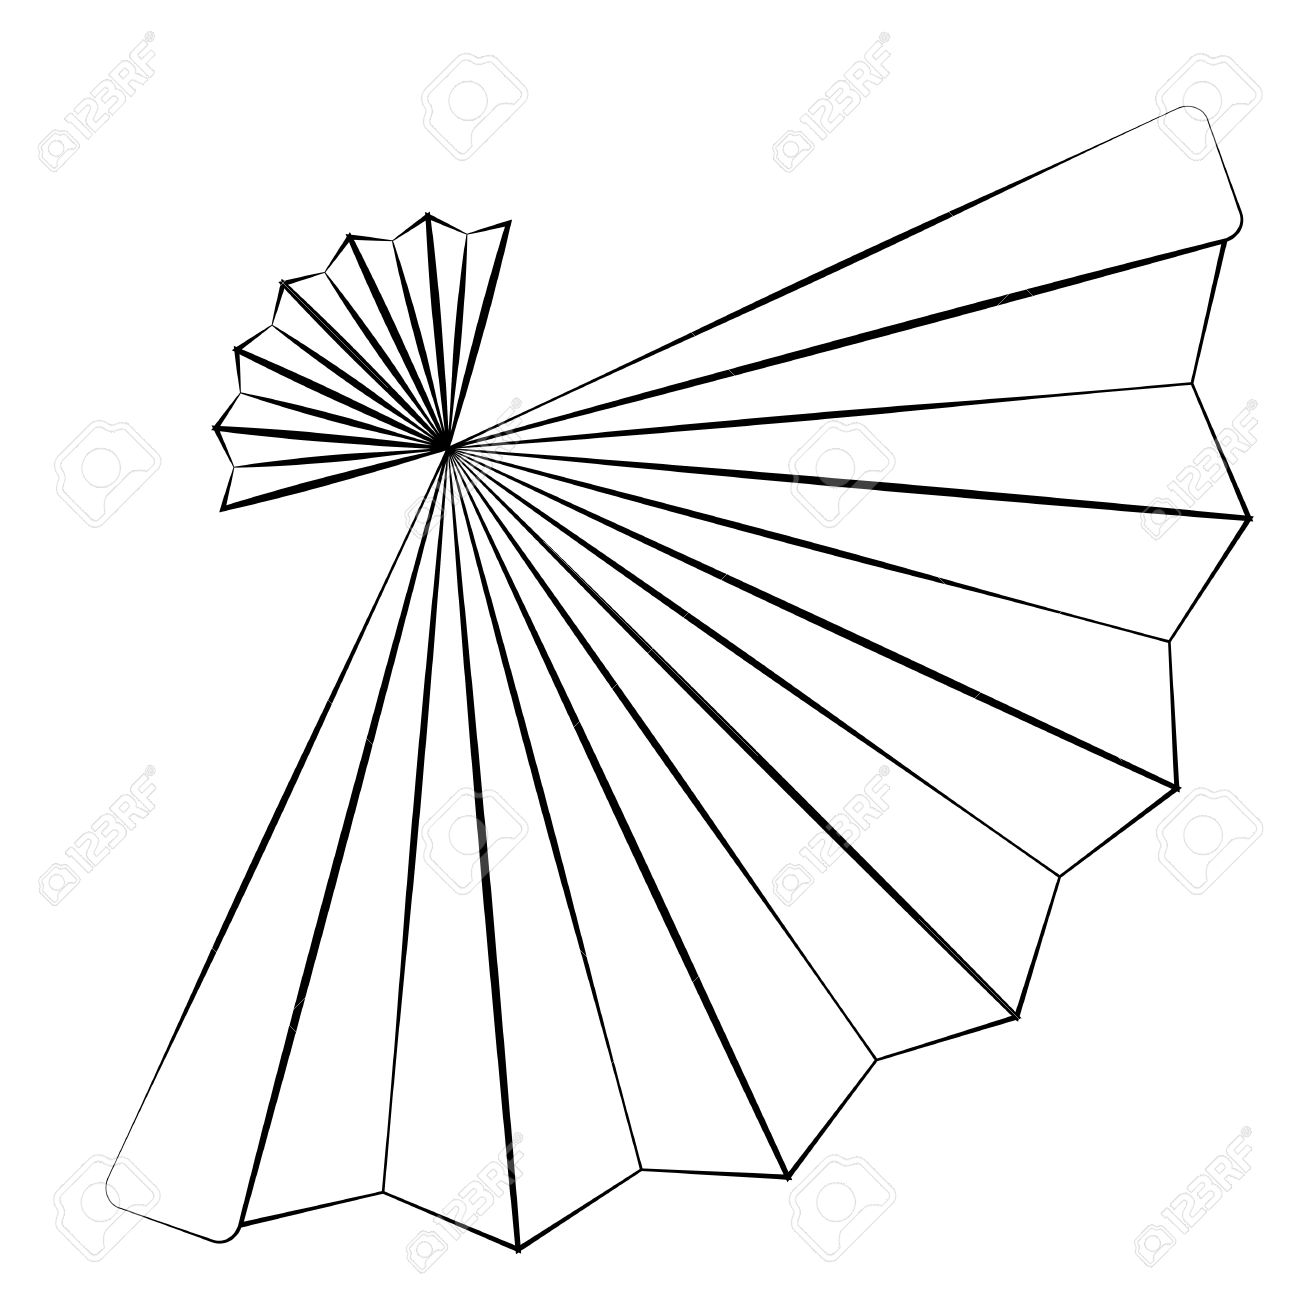 1300x1300 Black Outline Vector Fan On White Background. Royalty Free